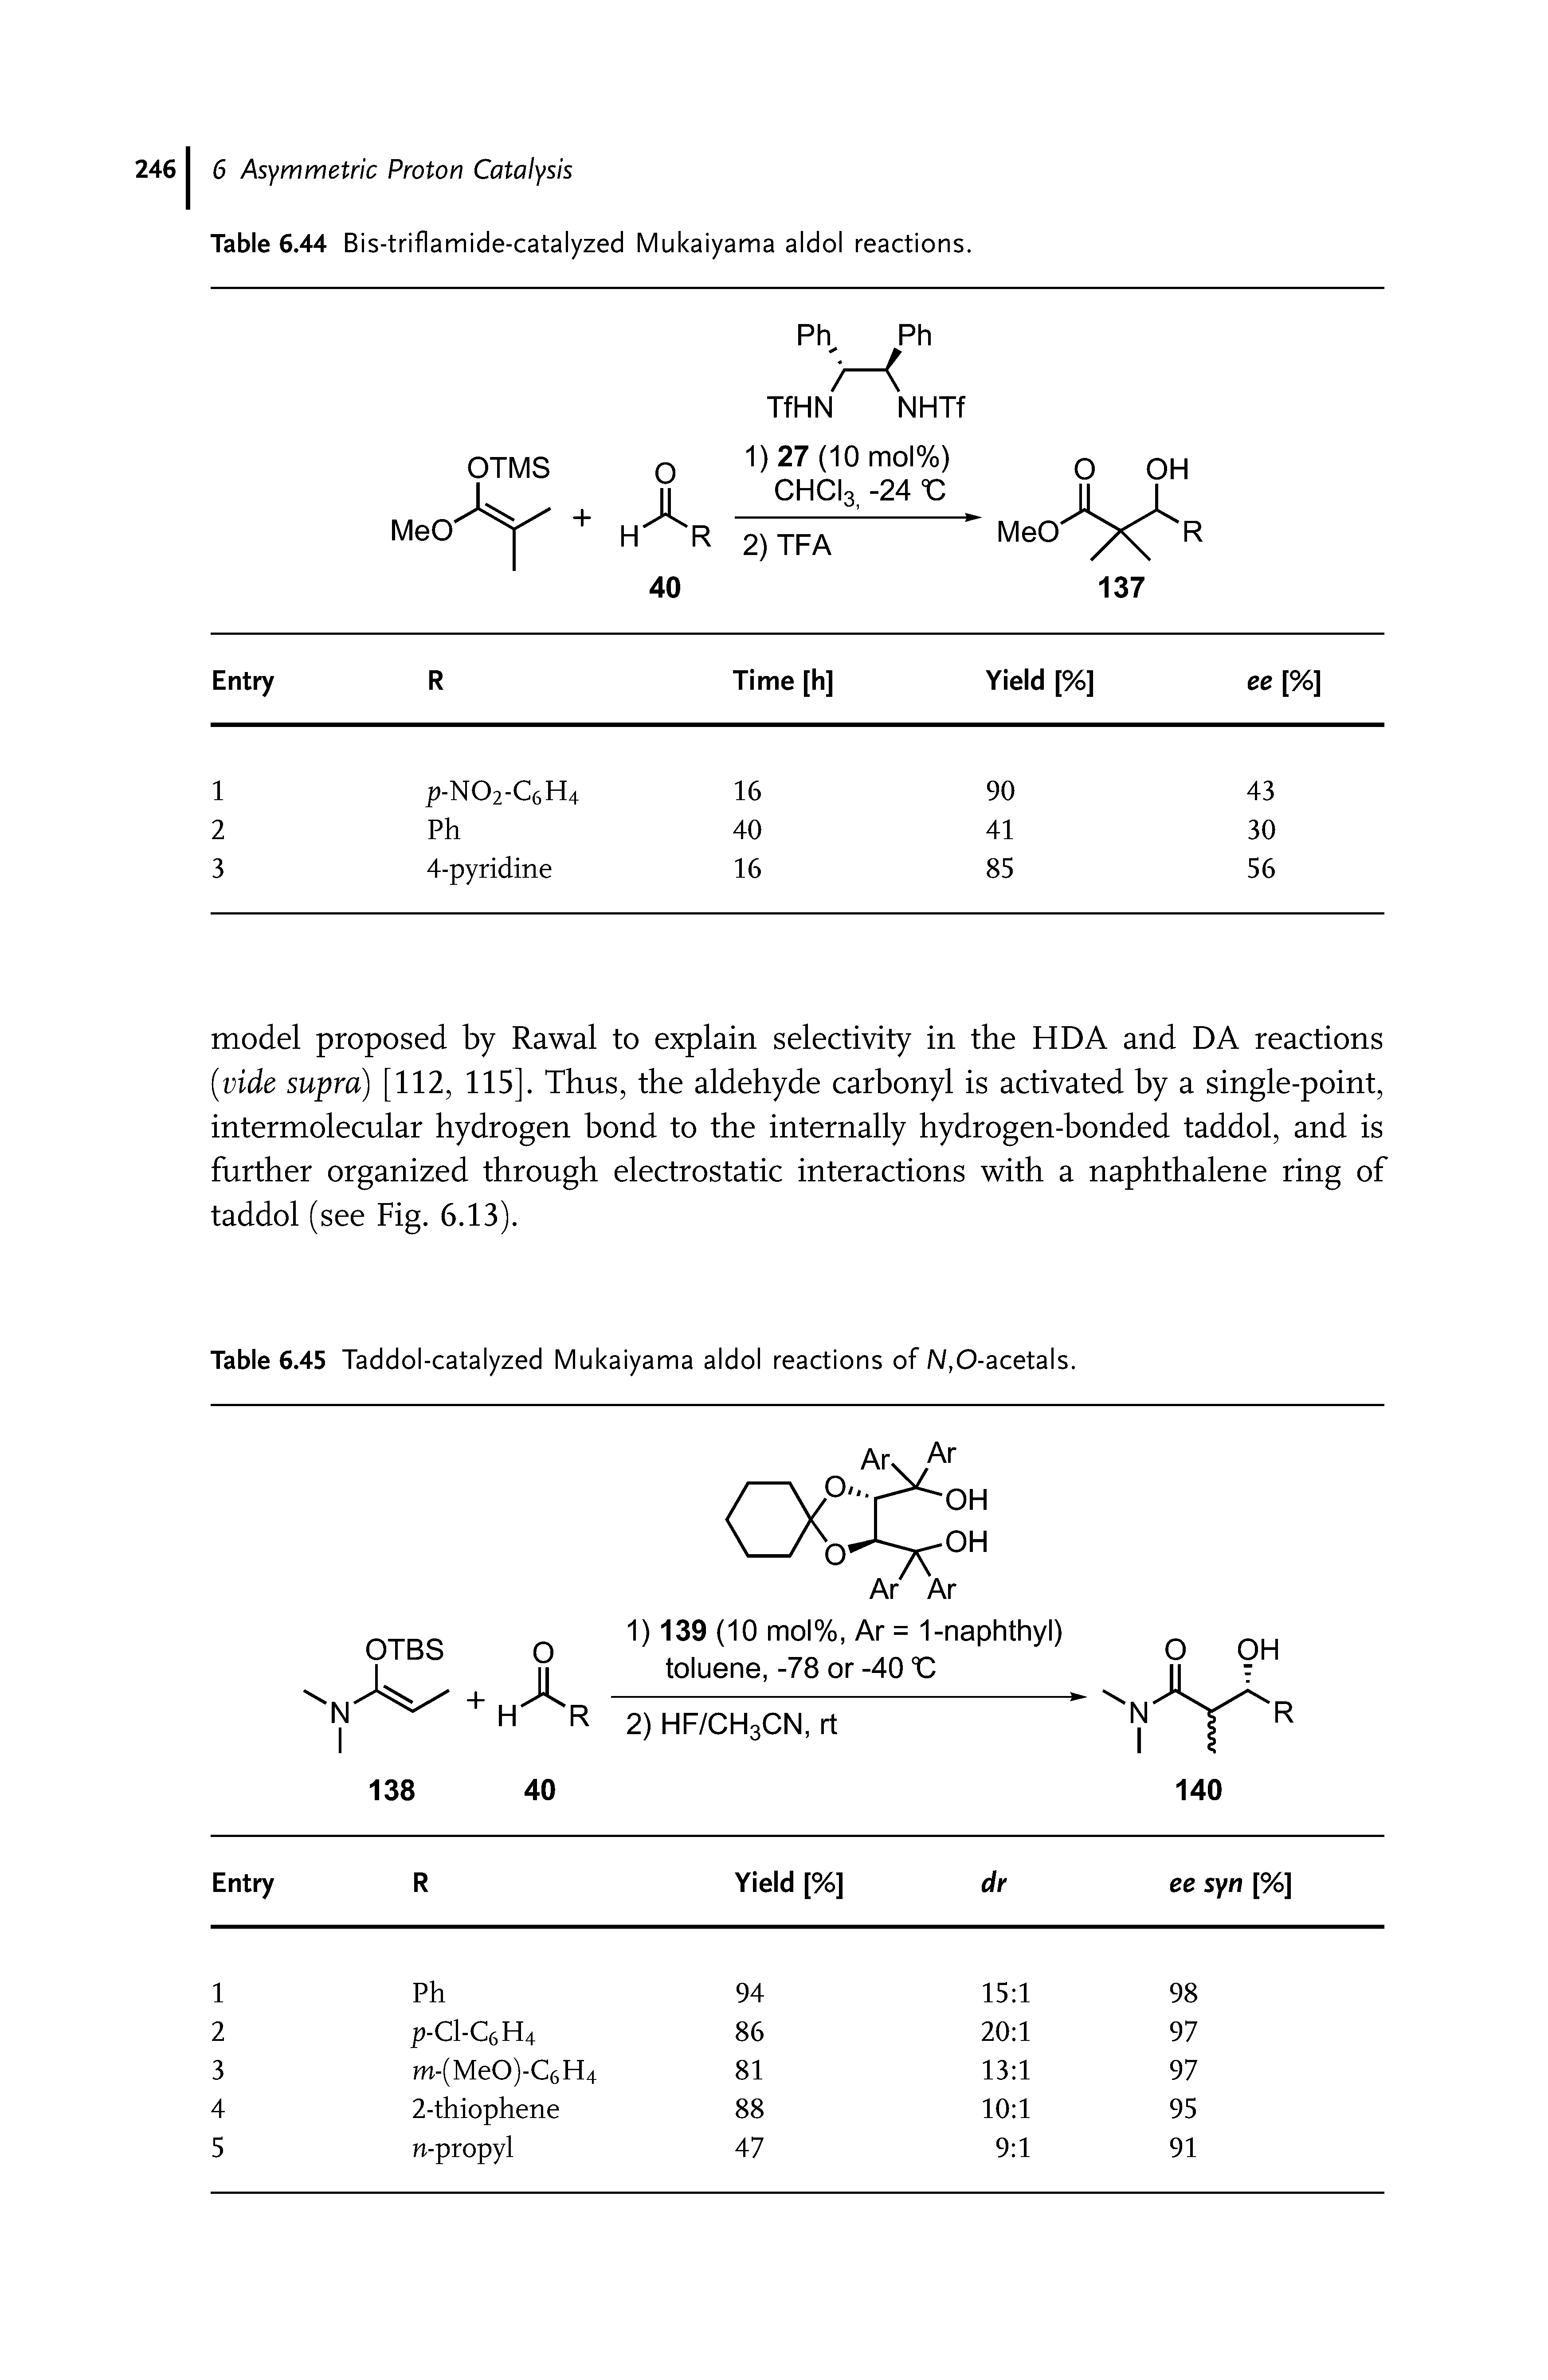 "Table 6.45 <a href=""/info/mukaiyama_taddol_catalyzed"">Taddol-catalyzed Mukaiyama</a> <a href=""/info/in_the_aldol_reaction"">aldol reactions</a> of N,Q-acetals."